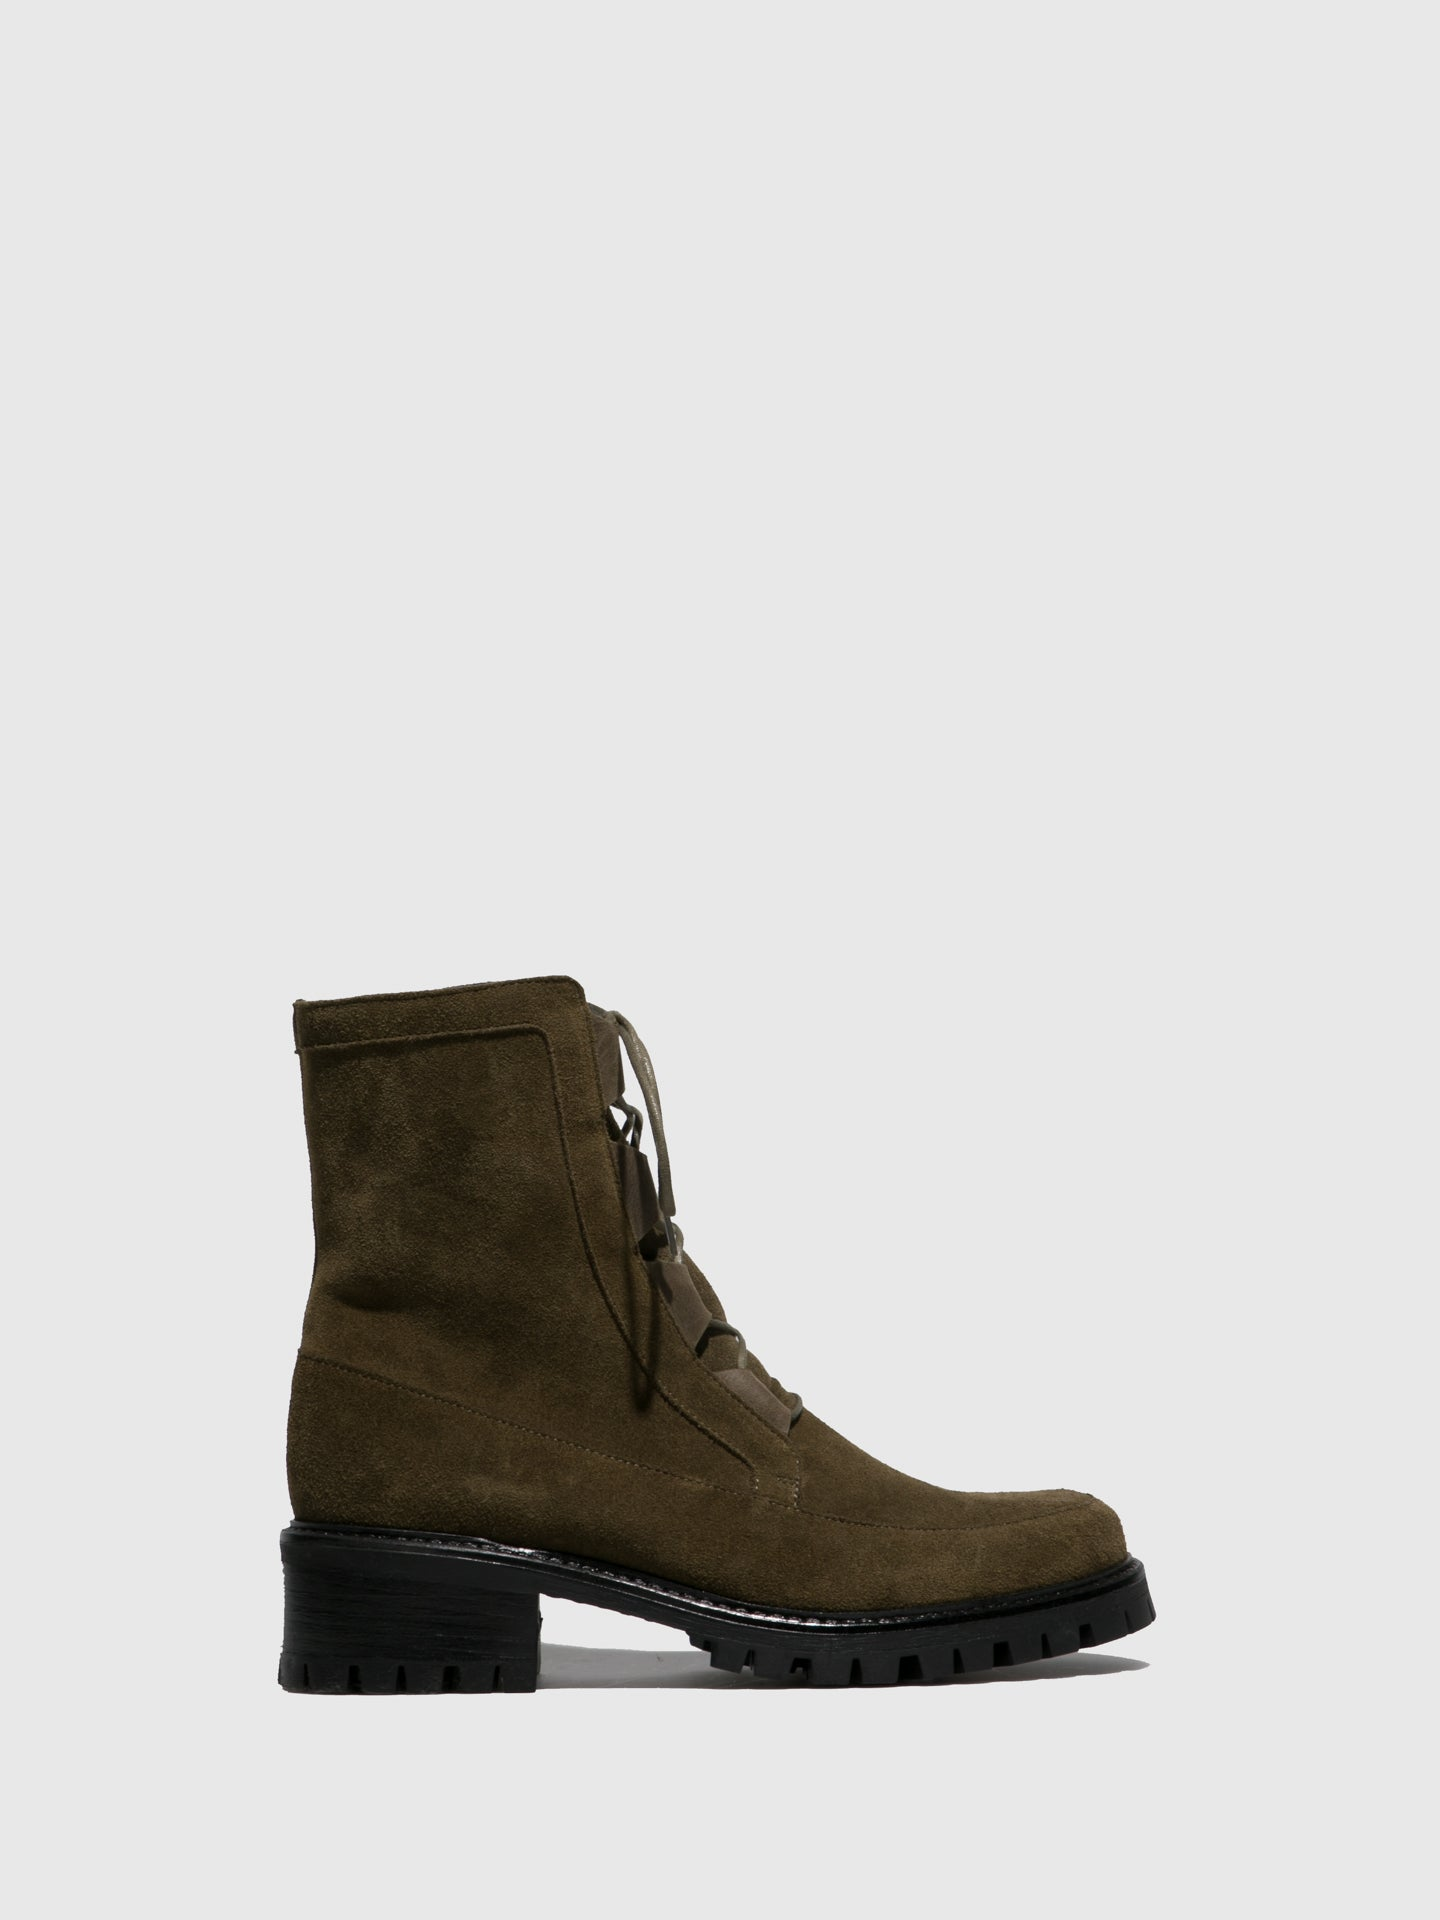 JJ Heitor Khaki Lace-up Ankle Boots